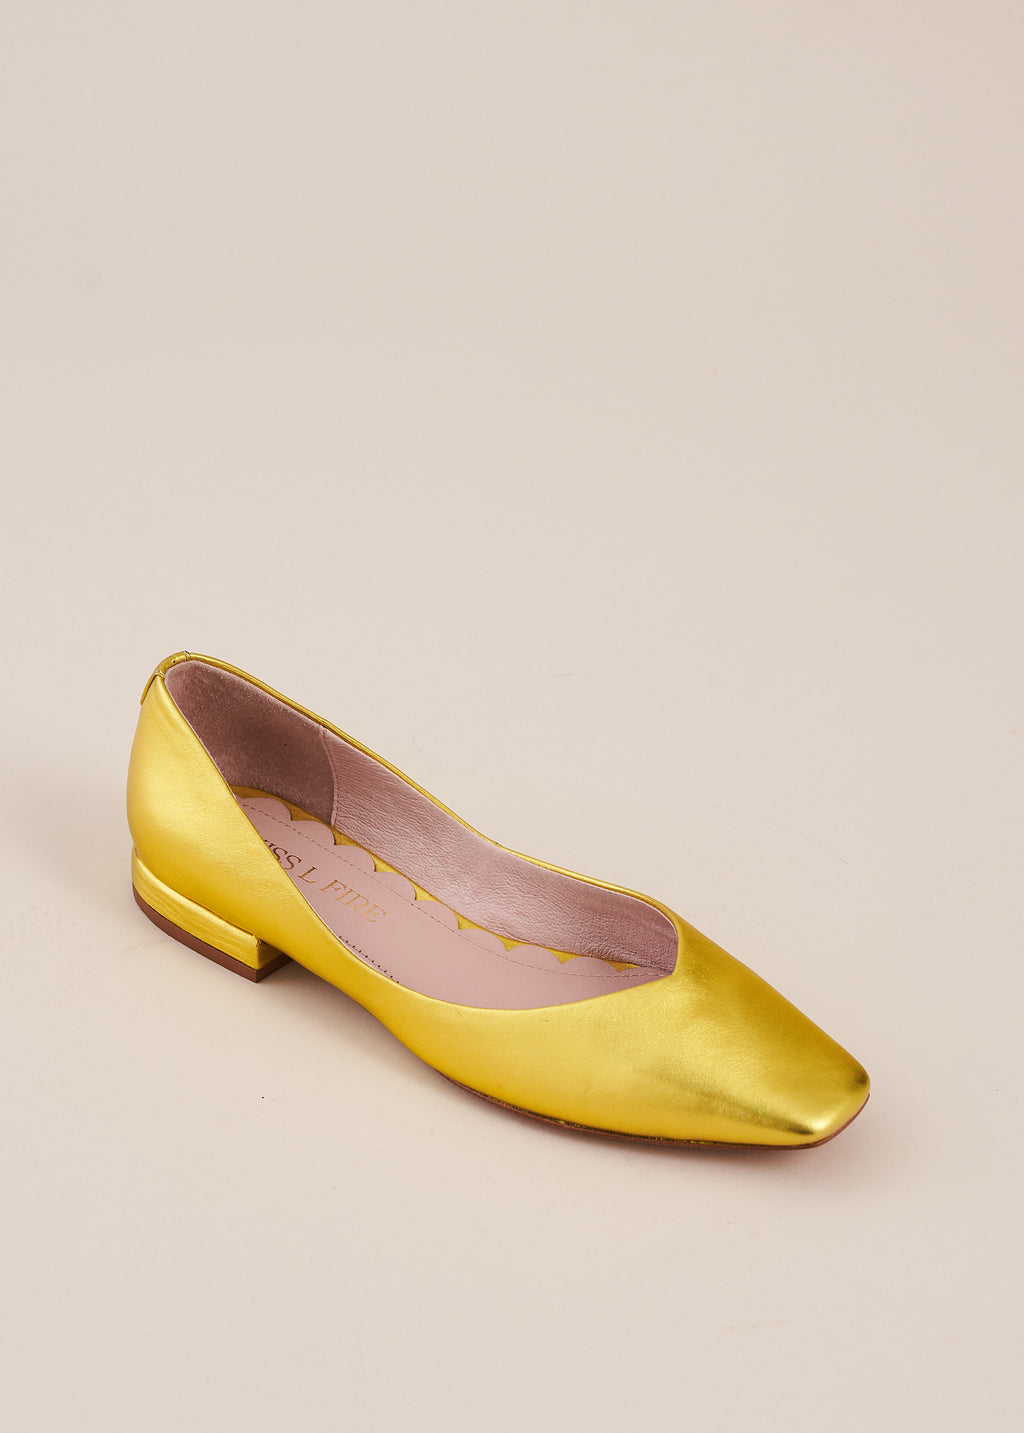 Polly Gold Metallic Square Toe Ballet Flat, by Miss L Fire. The perfect ballet flat for every day, weddings , bridesmaids. Your go to flat for the summer.